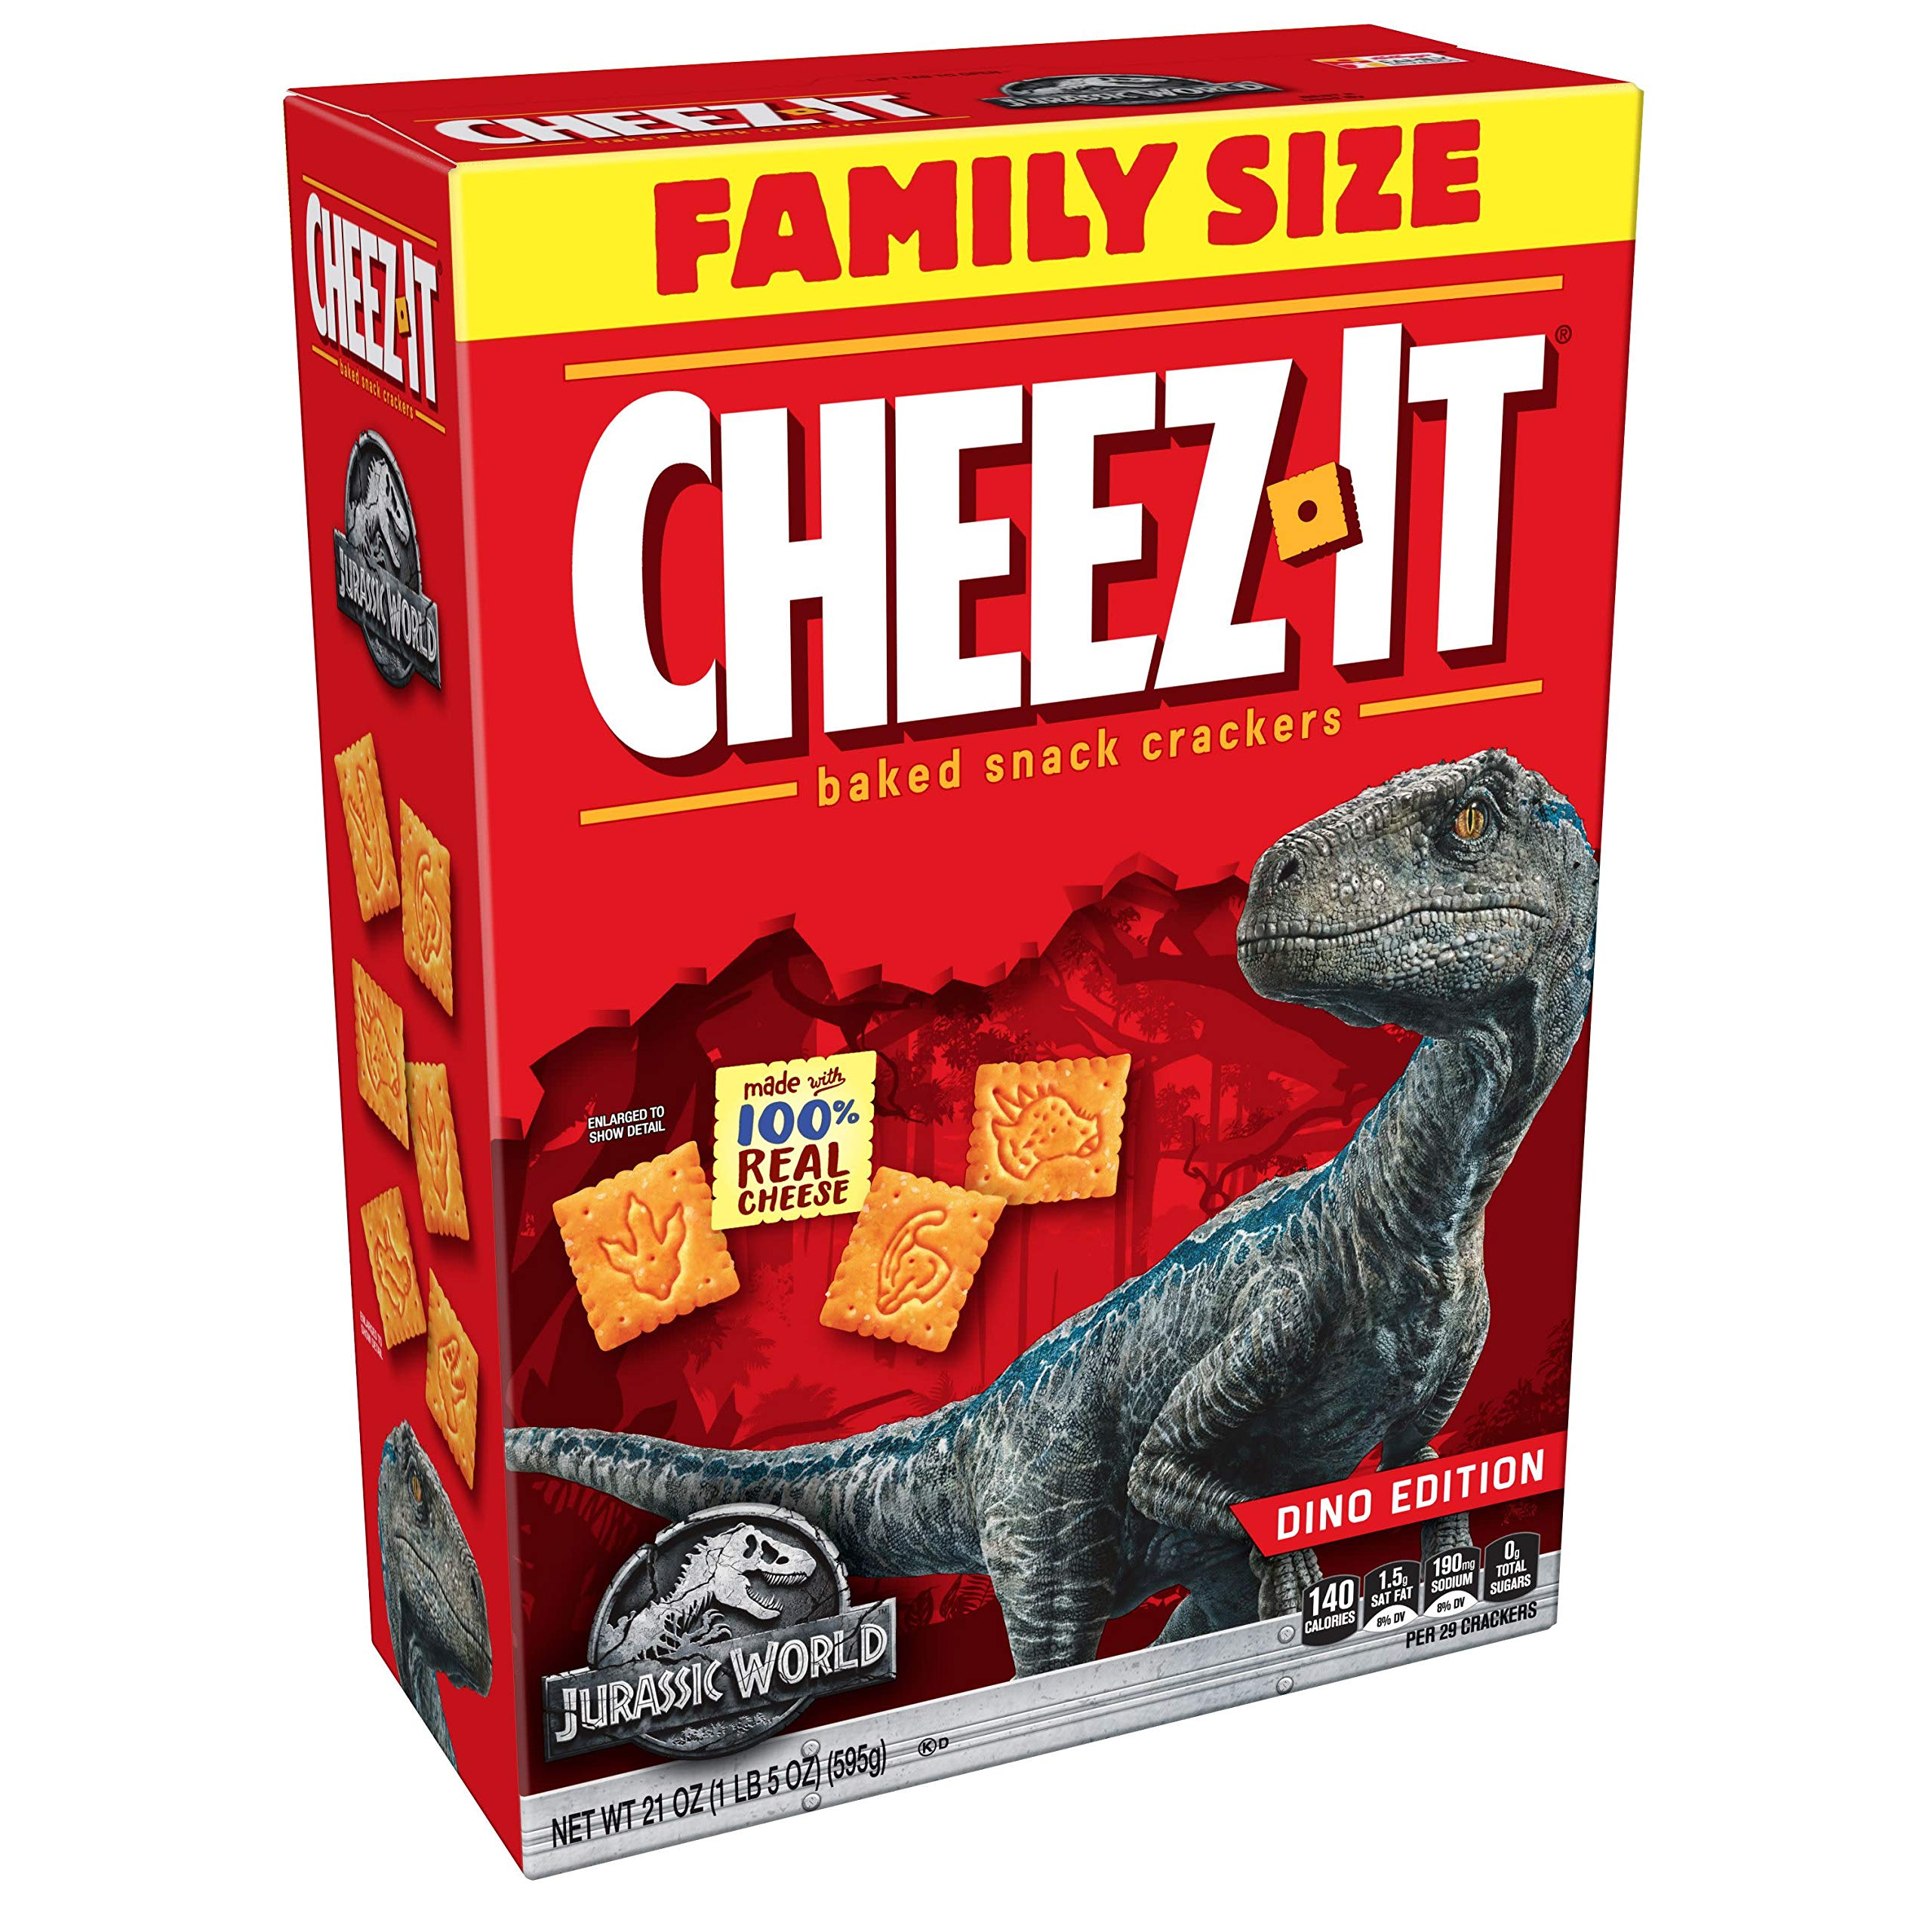 Cheez-It Despicable Me 3 'Family Size' (21-Ounce Box)(Pack of 12) by Cheez-It (Image #1)